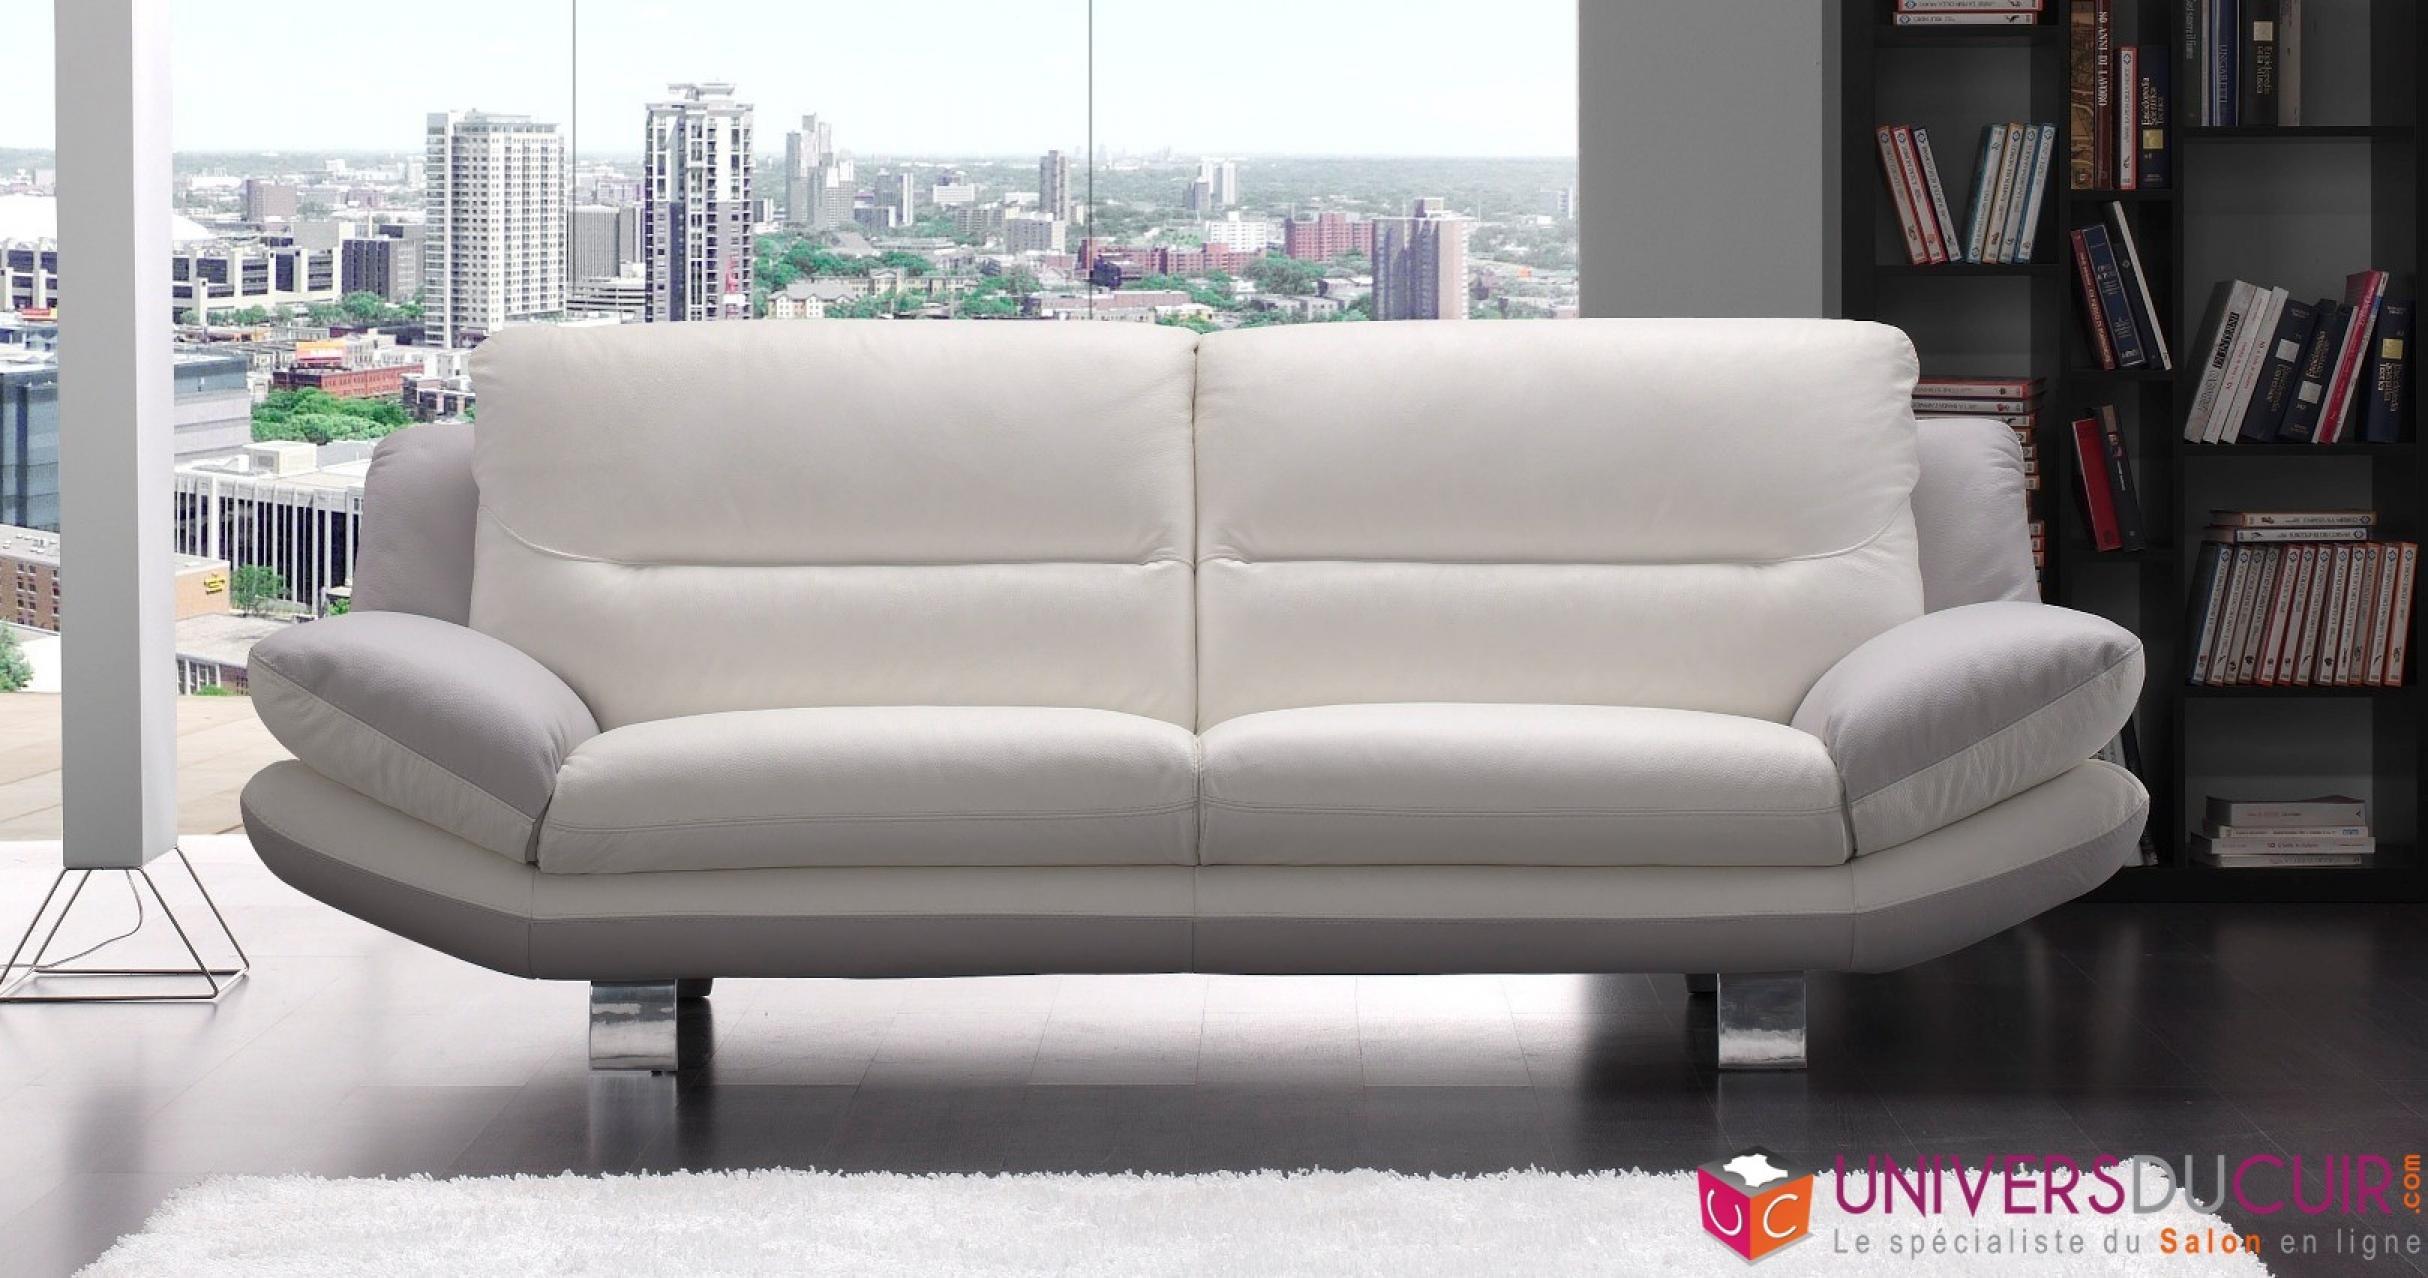 Attractive canape moderne pas cher 9 canap moderne pas - Canape moderne pas cher ...